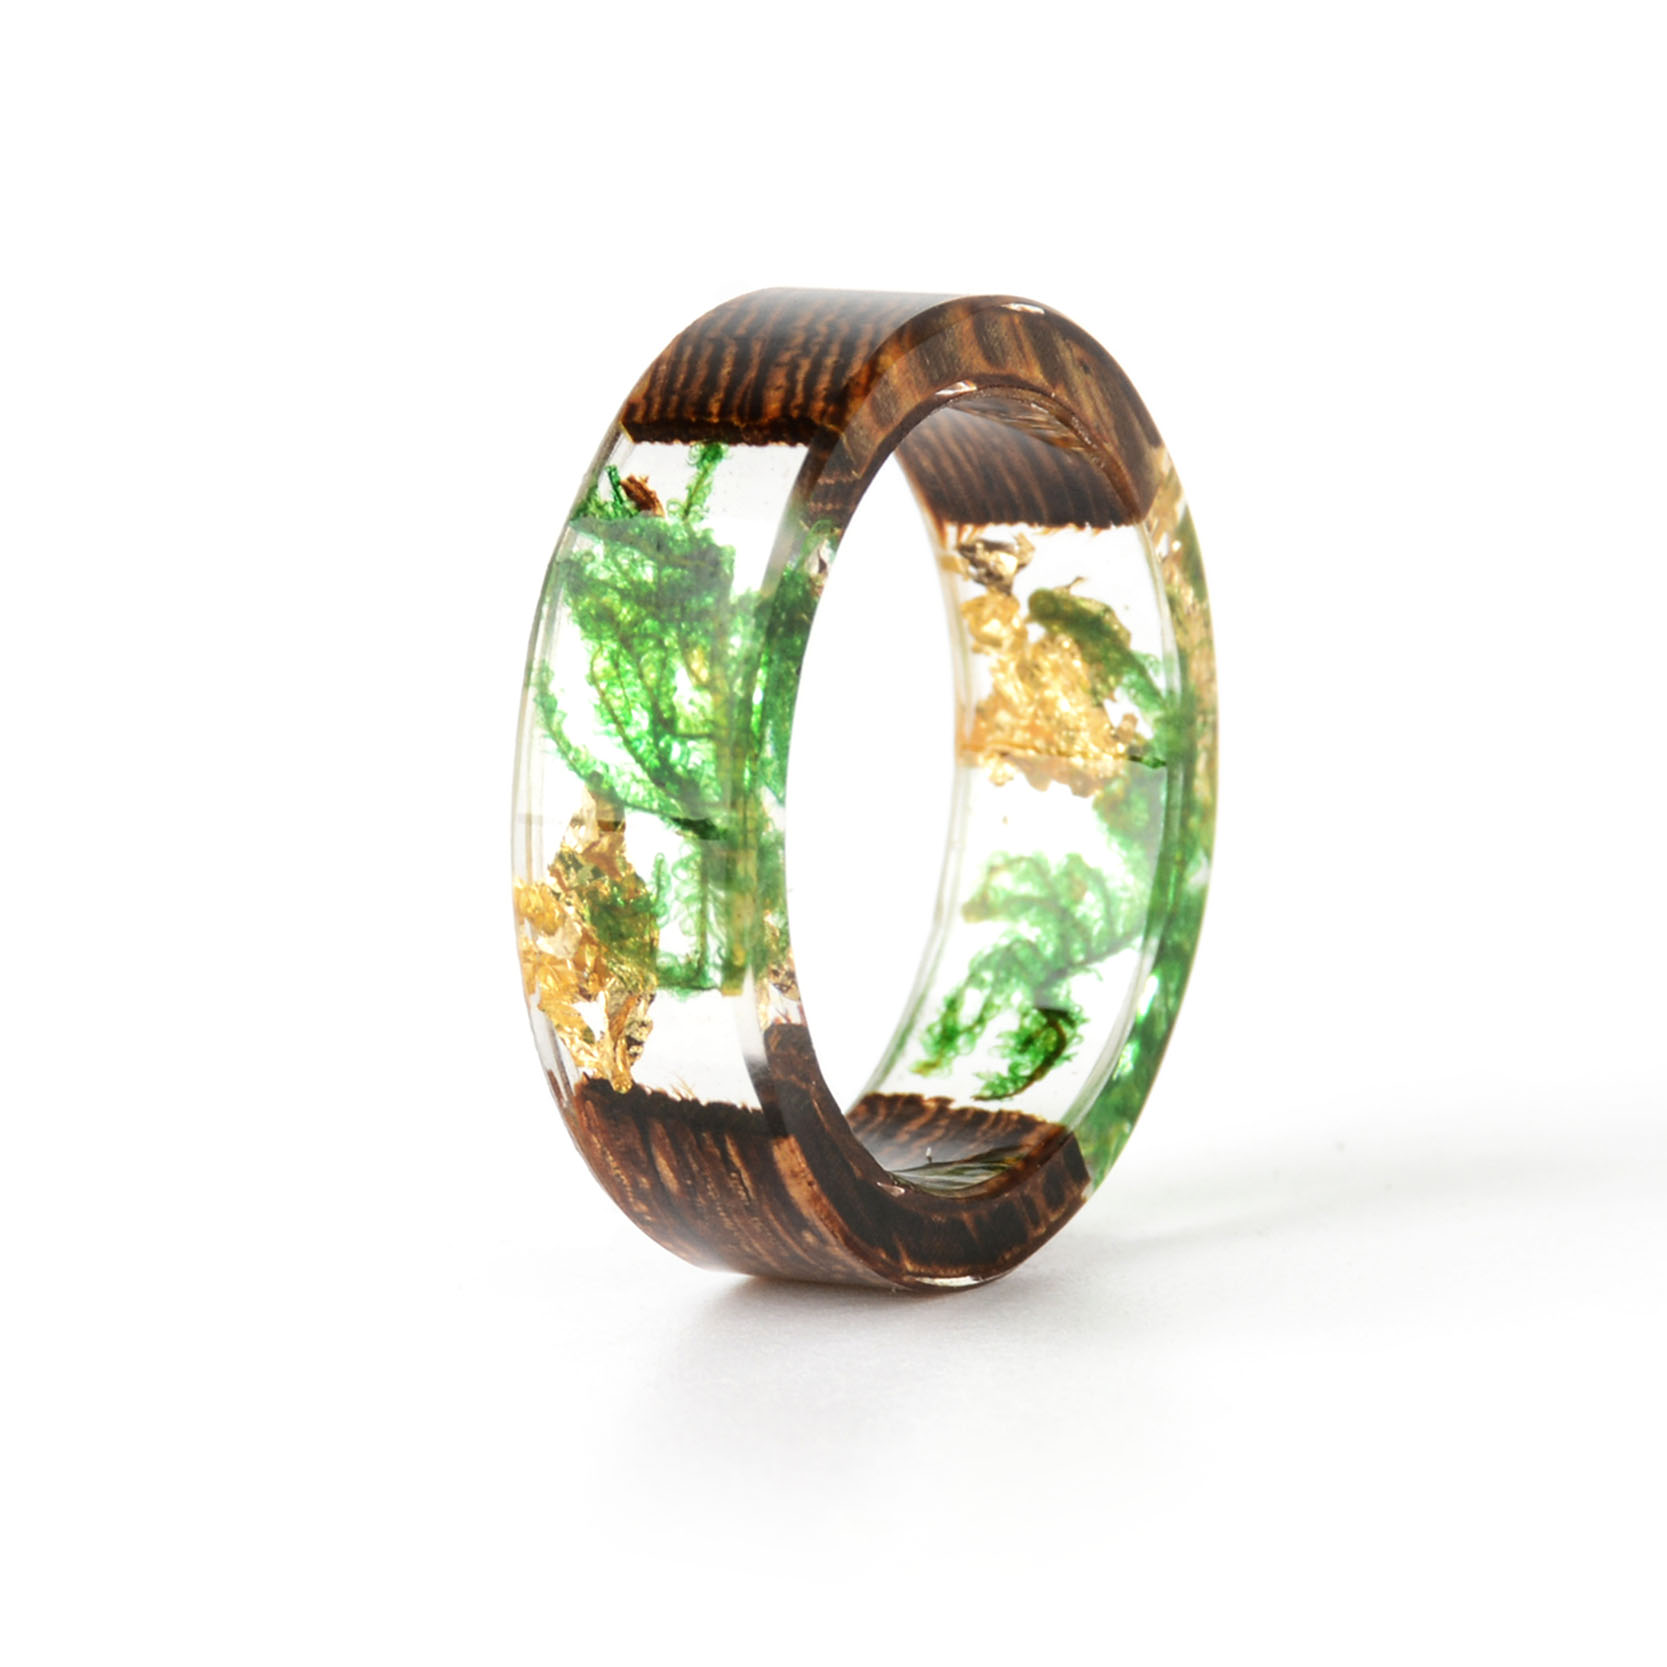 Handmade Wood Resin Ring Many Styles 28